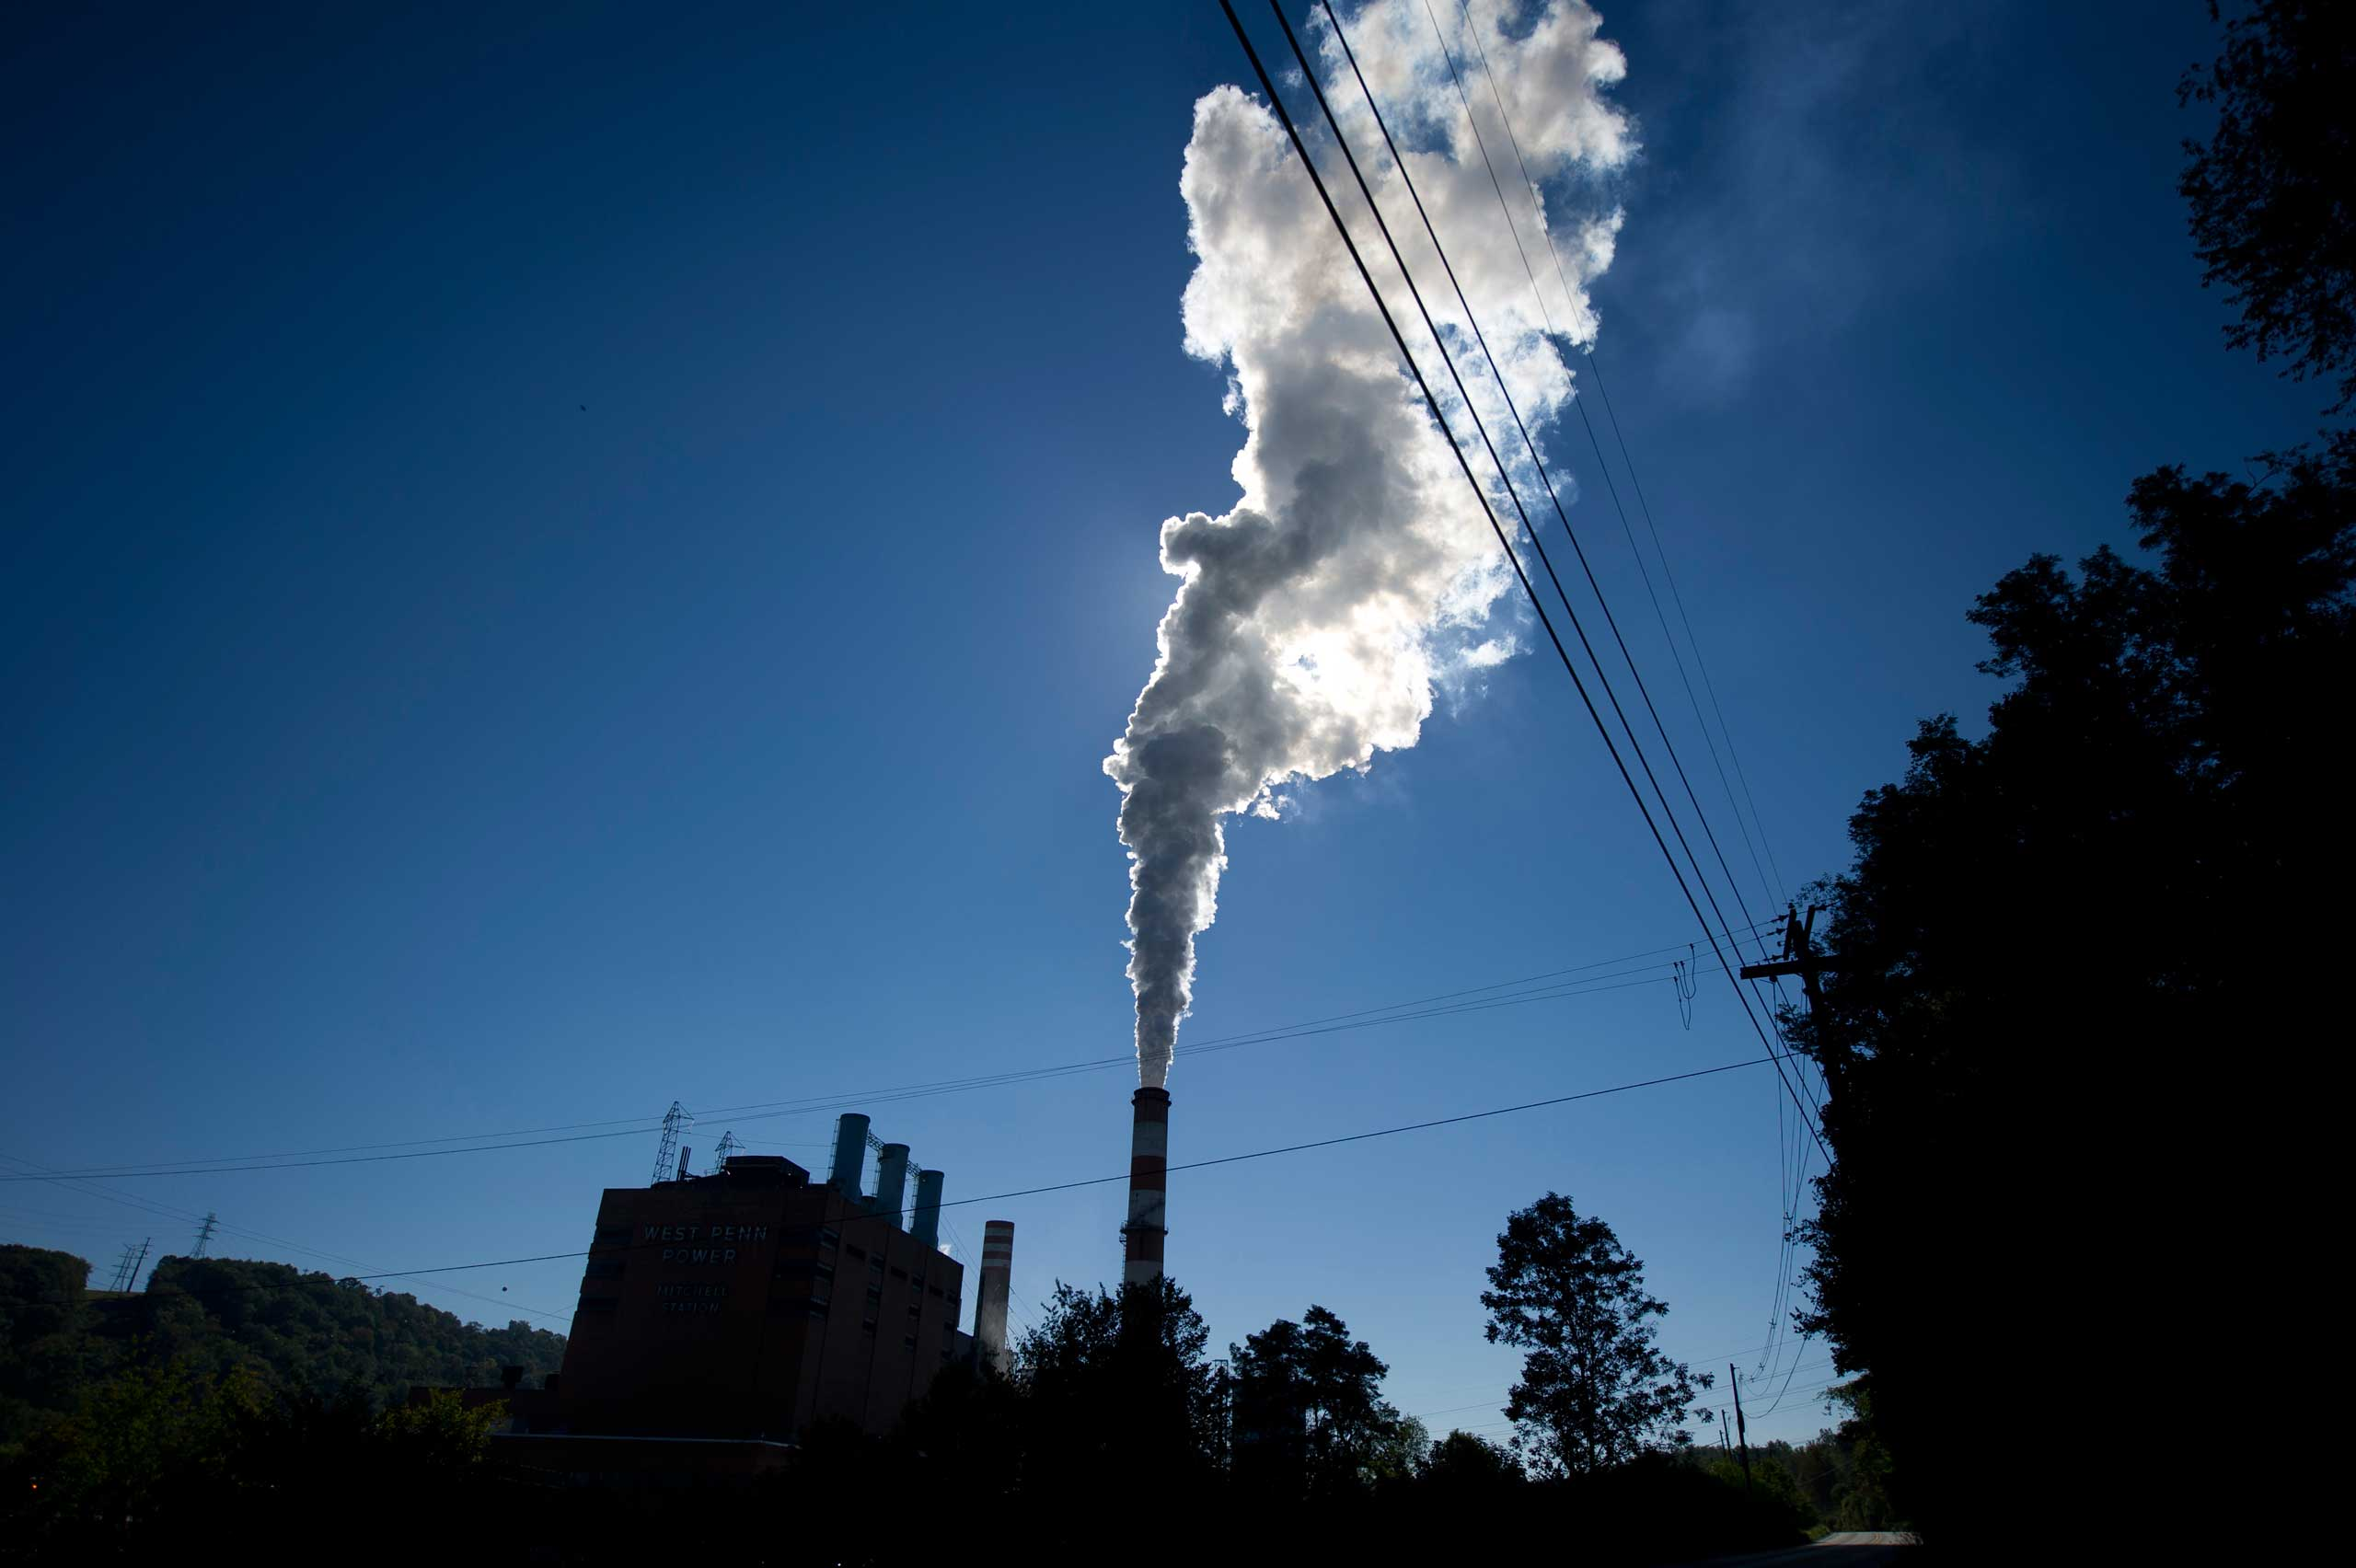 A plume of exhaust extends from the Mitchell Power Station, a coal-fired power plant located 20 miles southwest of Pittsburgh, on Sept. 24, 2013 in New Eagle, Pa.